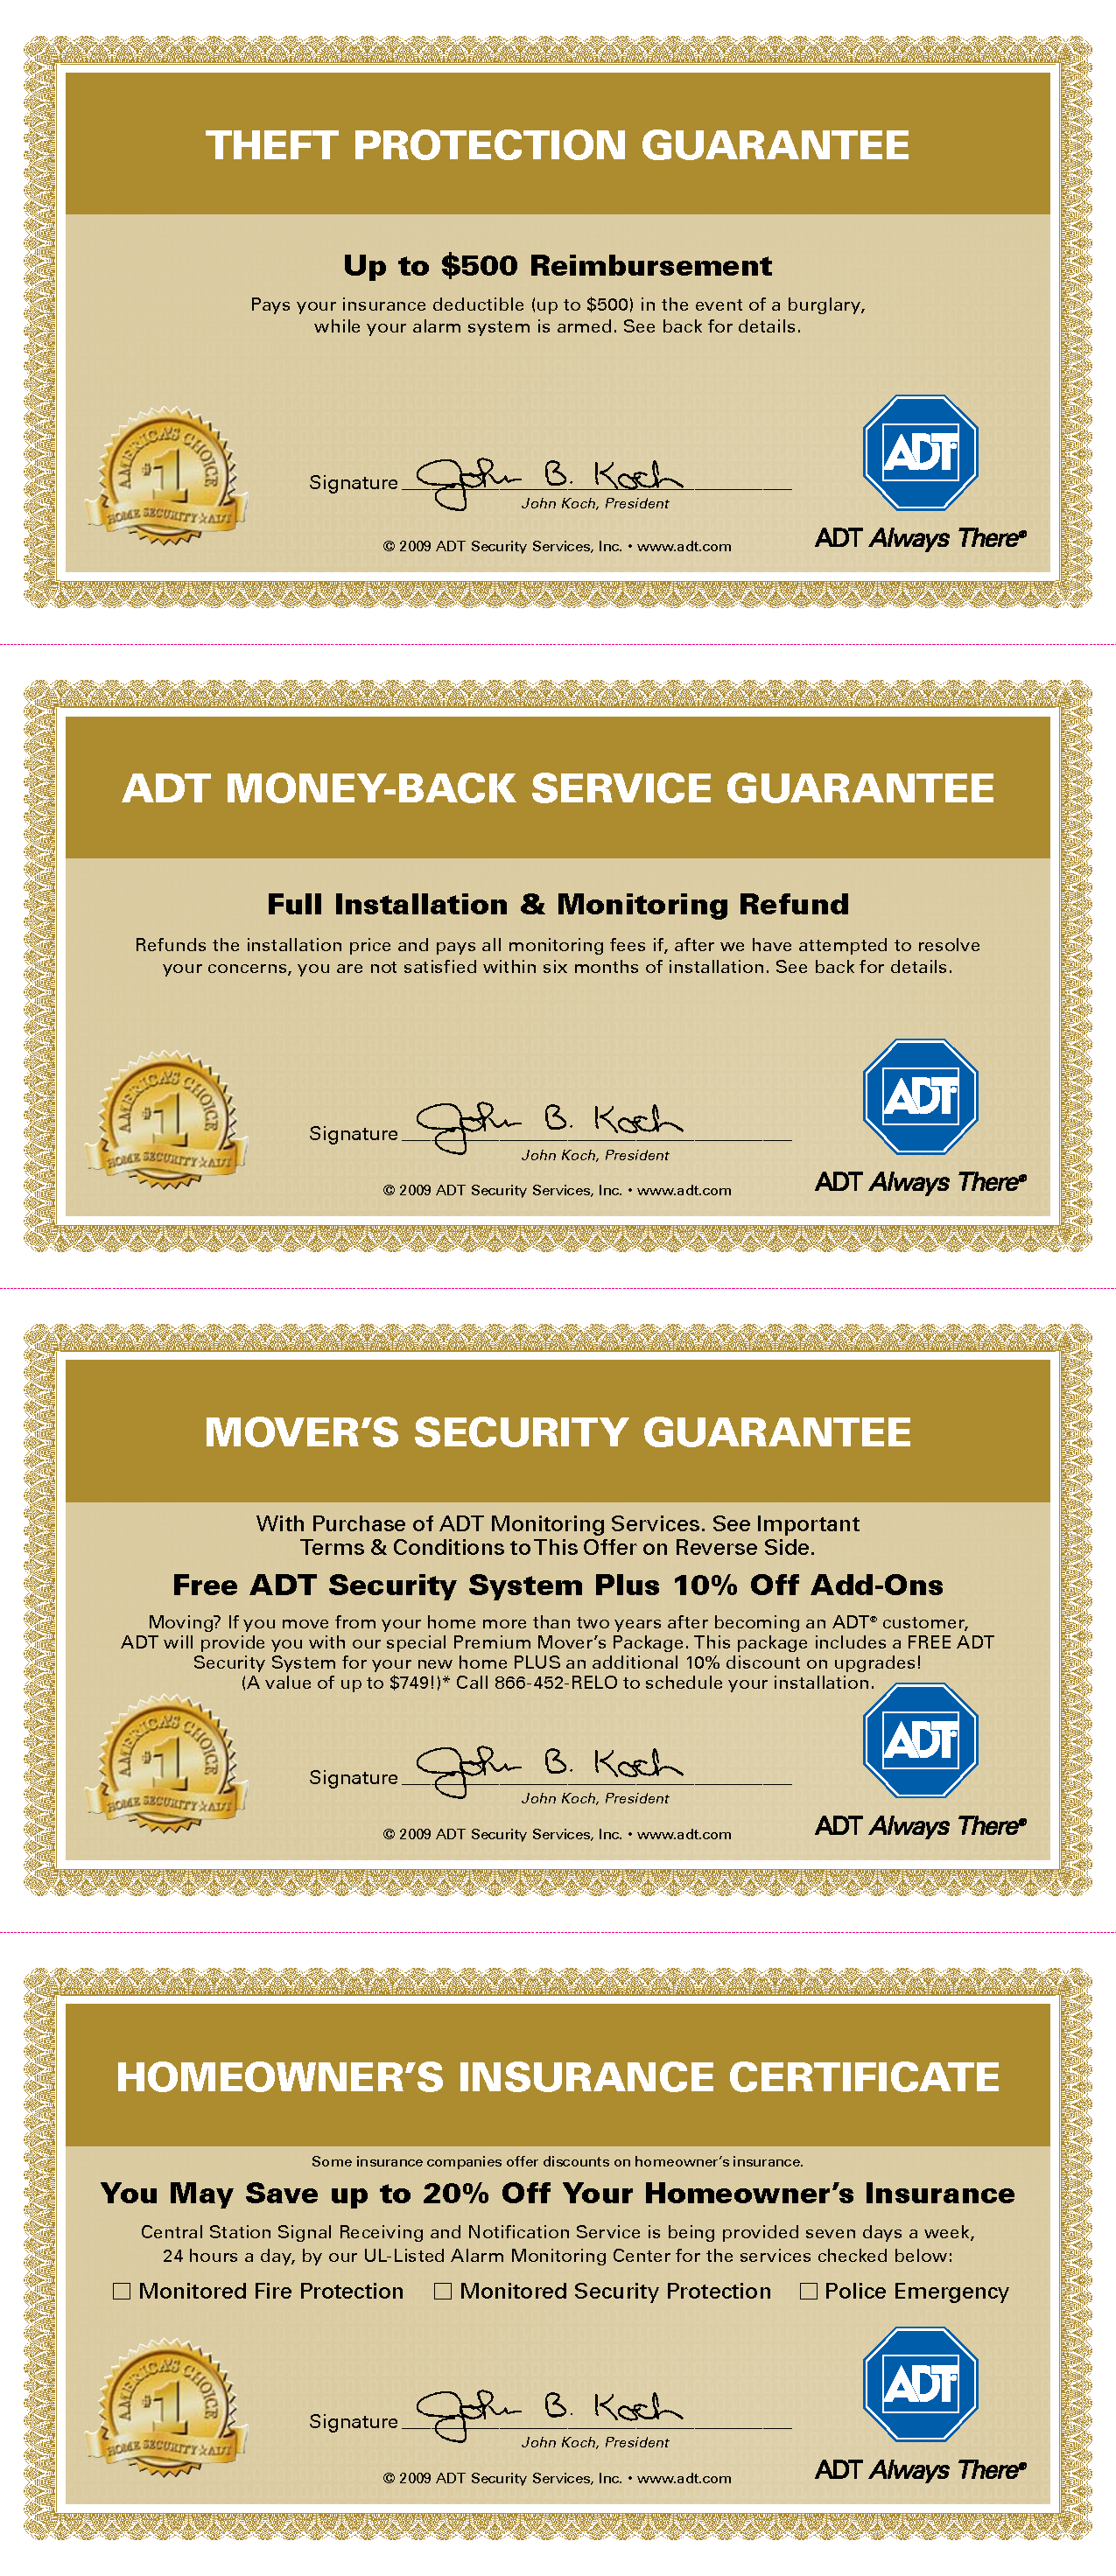 ADT_warrantees_and_guarantees_Movers_Security_Gaurantee_Money_back_service_guarantee_Theft_Protection_Guarantee_Homeowners_Insurance_Certificate